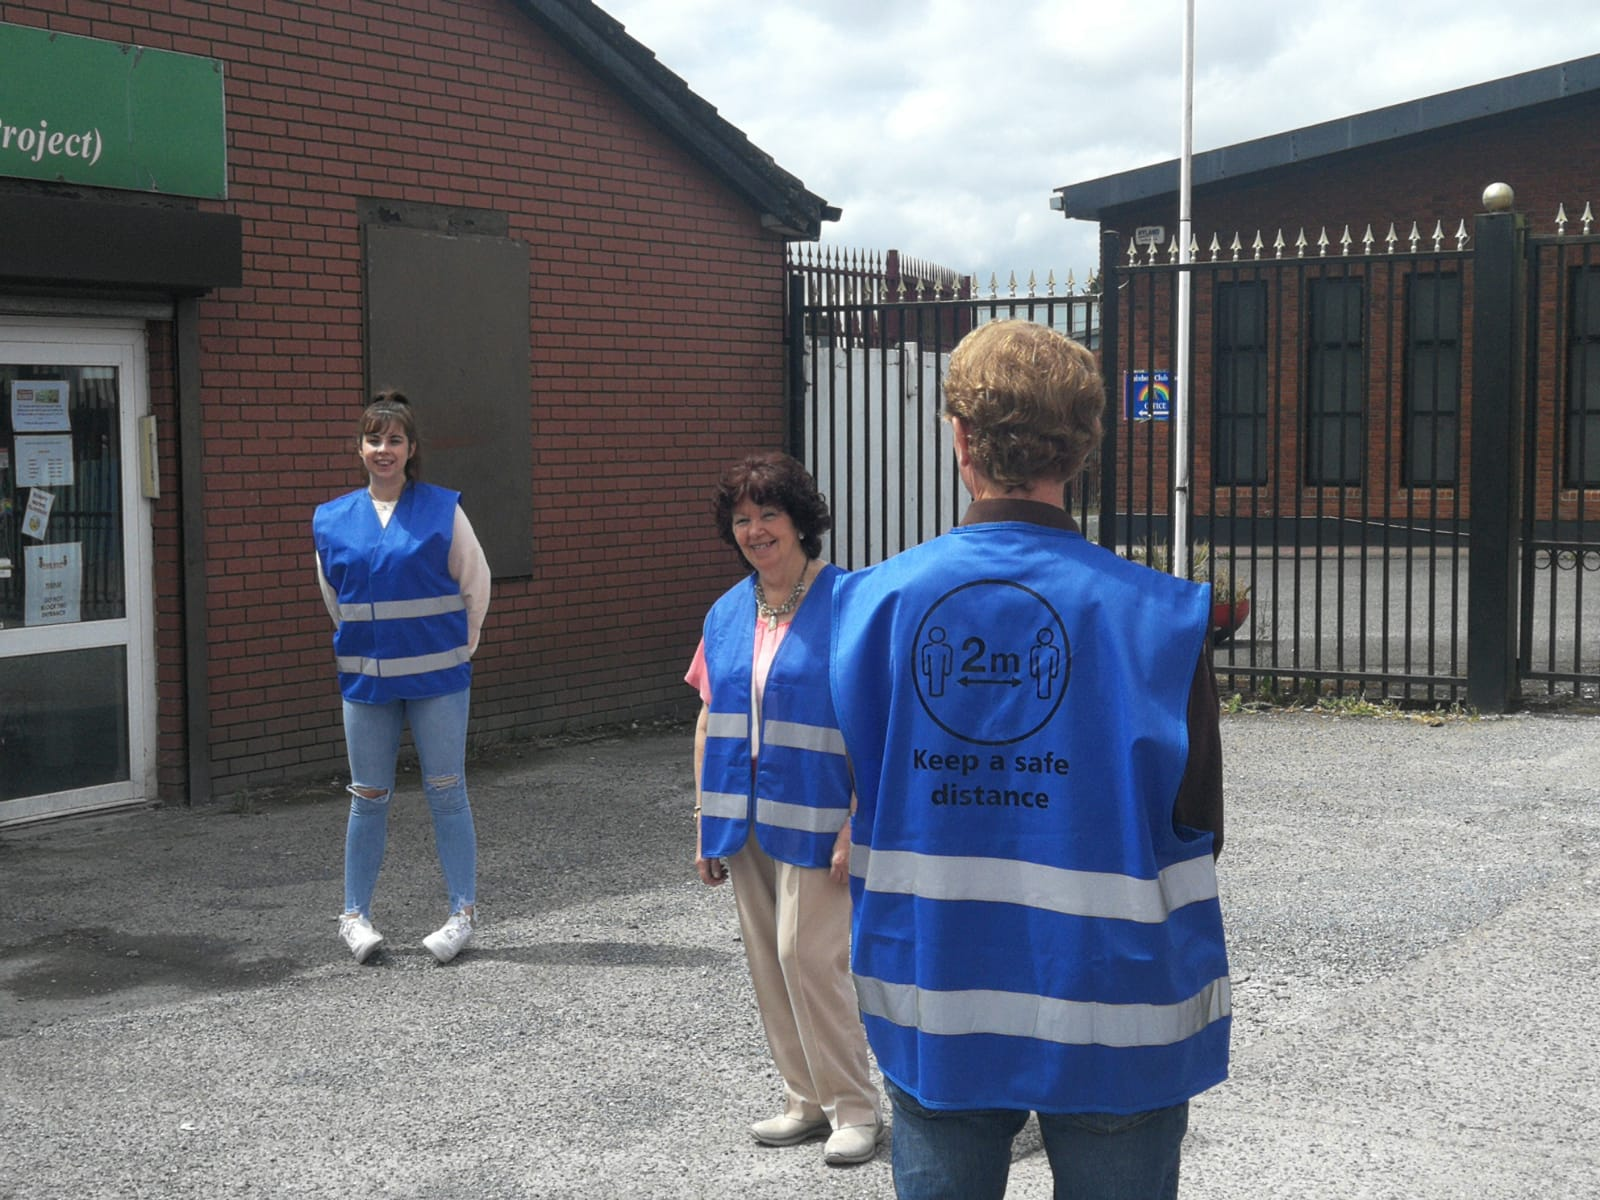 /corkcityco/en/council-services/news-room/latest-news/mahon-cdp-blue-vests.jpg